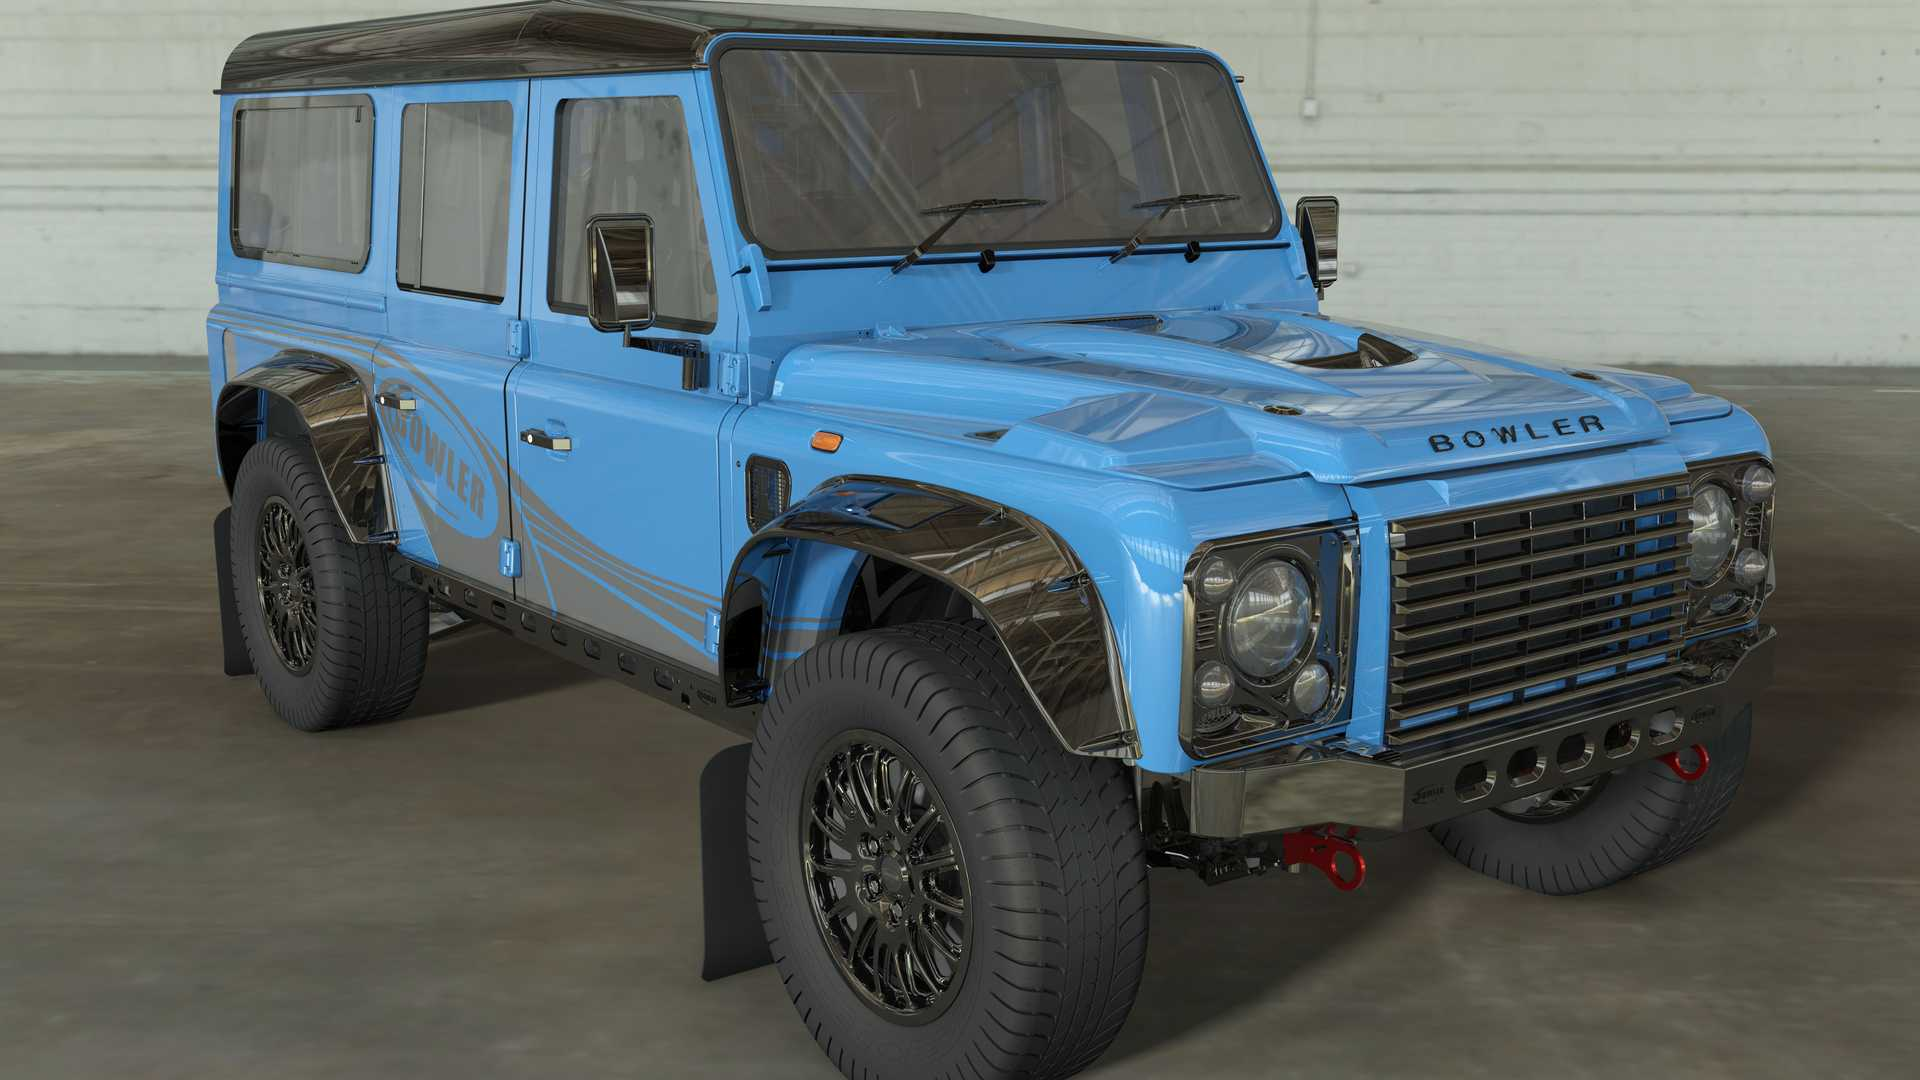 Original Defender 110 coming back, and with air conditioning